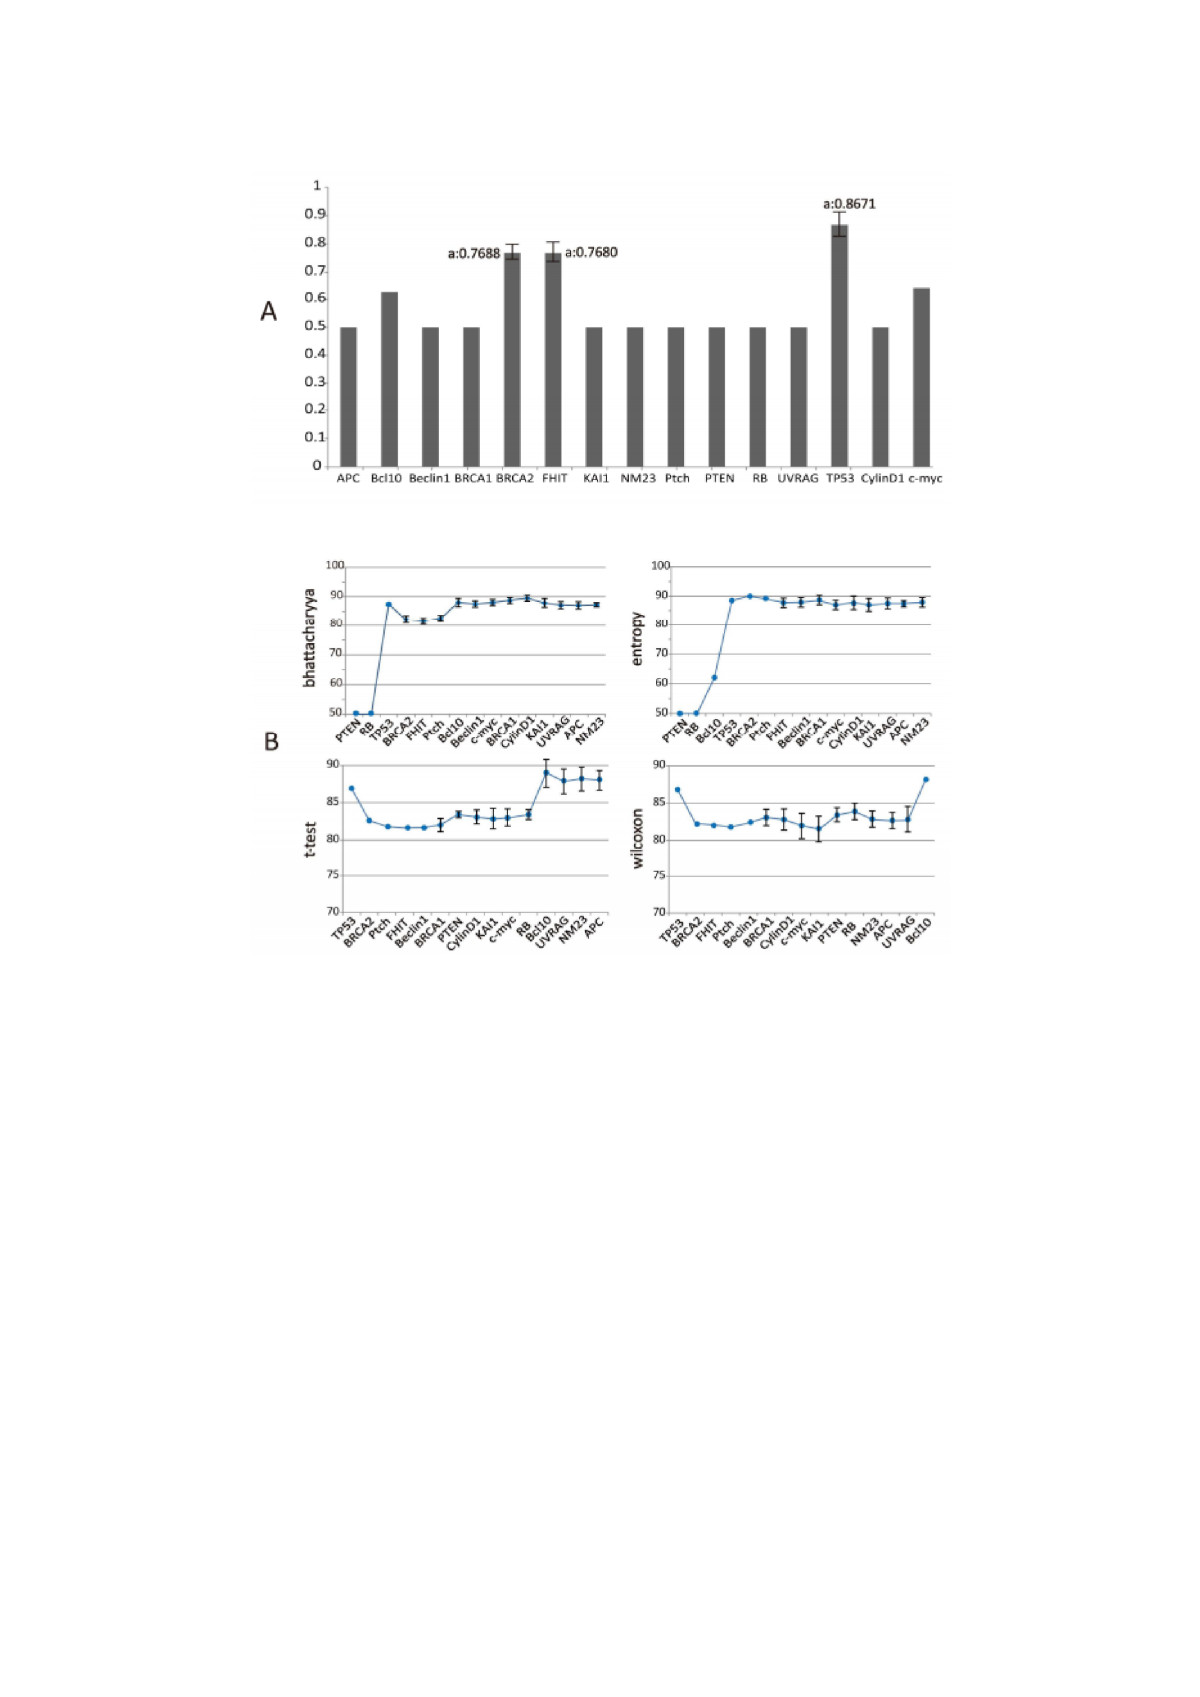 http://static-content.springer.com/image/art%3A10.1186%2F1477-7819-10-252/MediaObjects/12957_2012_Article_1178_Fig3_HTML.jpg